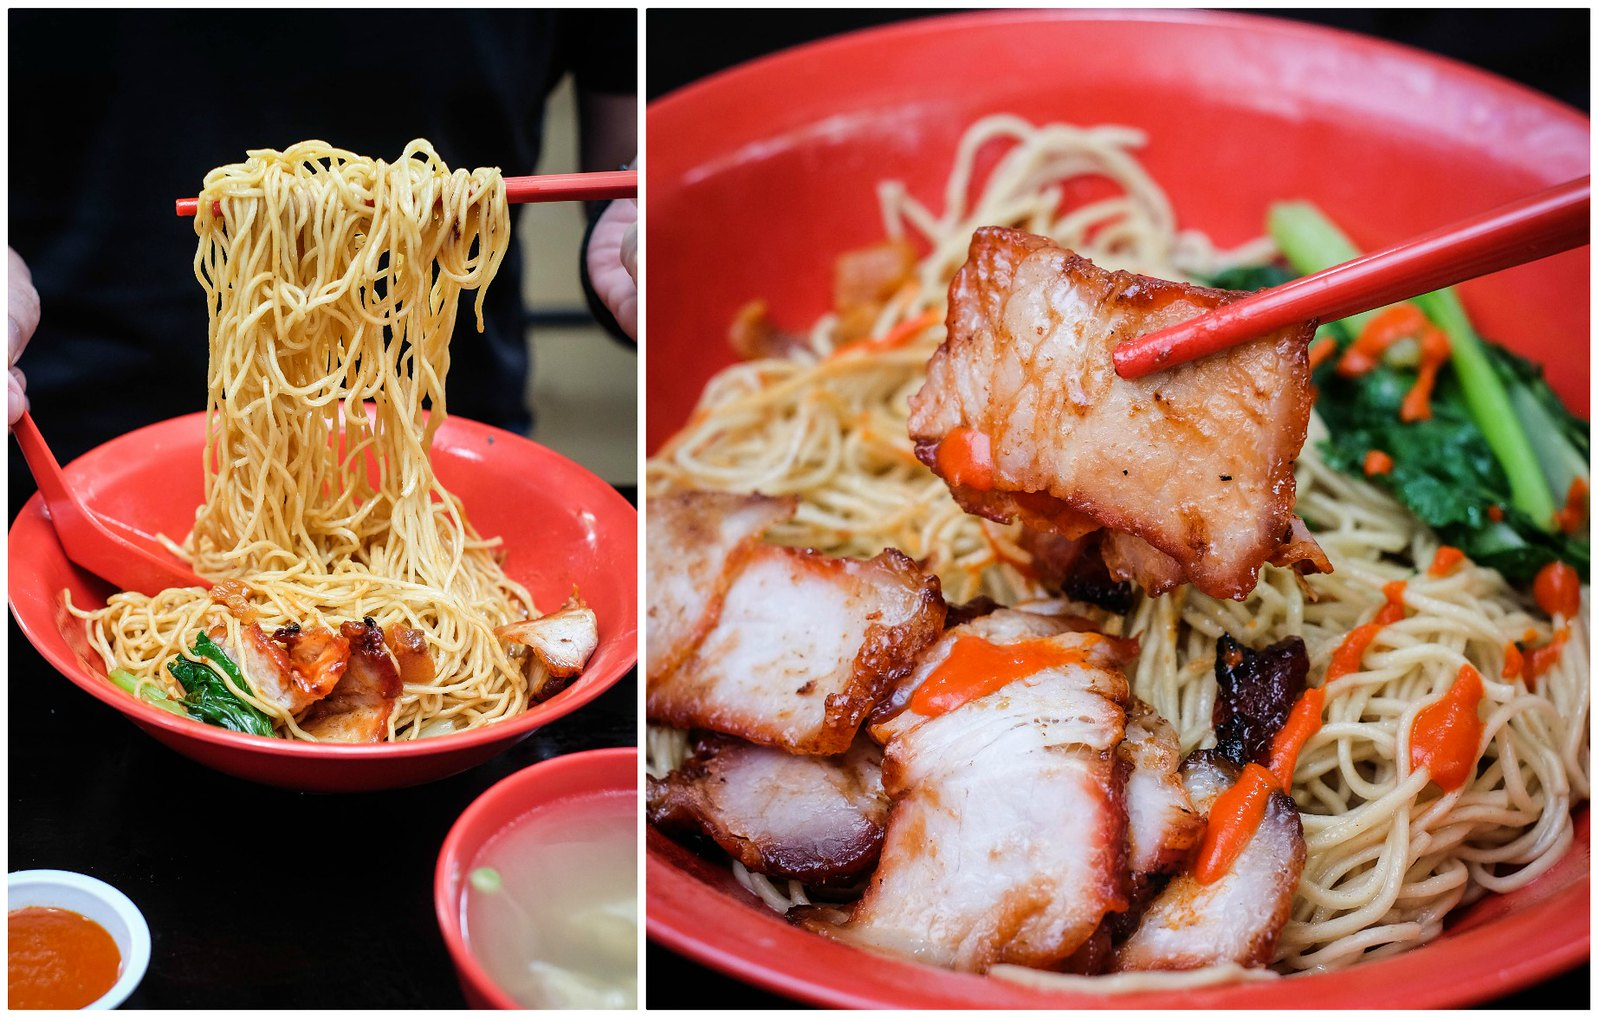 engs wantan mee iPiccy-collage4